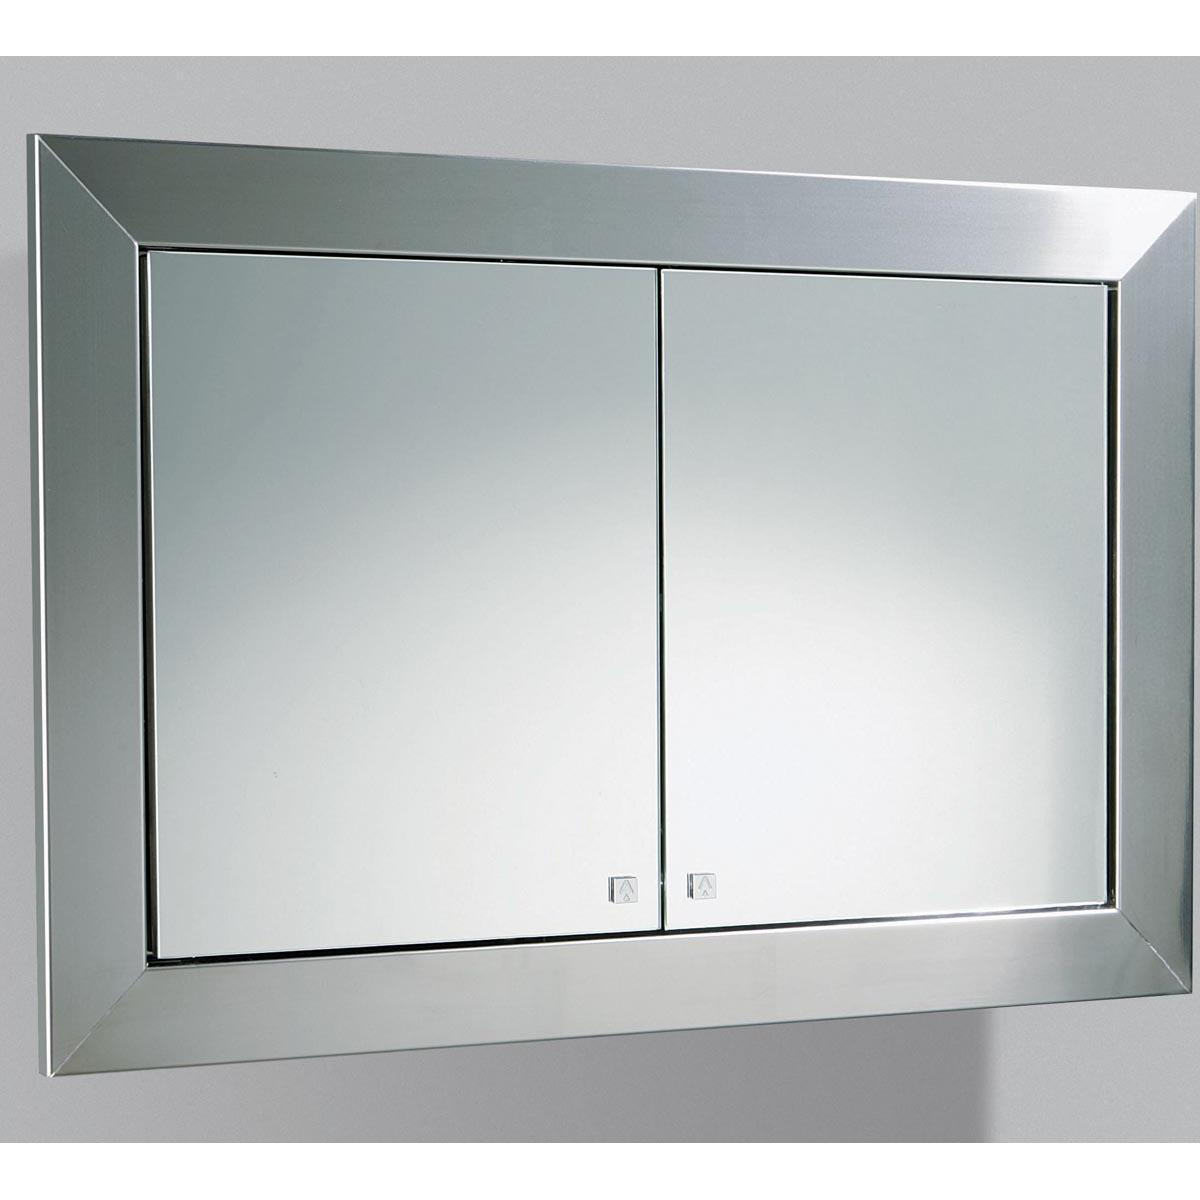 Mirrored Bathroom Cabinet Mirror Cabinet For Bathroom China Stainless Steel Cabinet